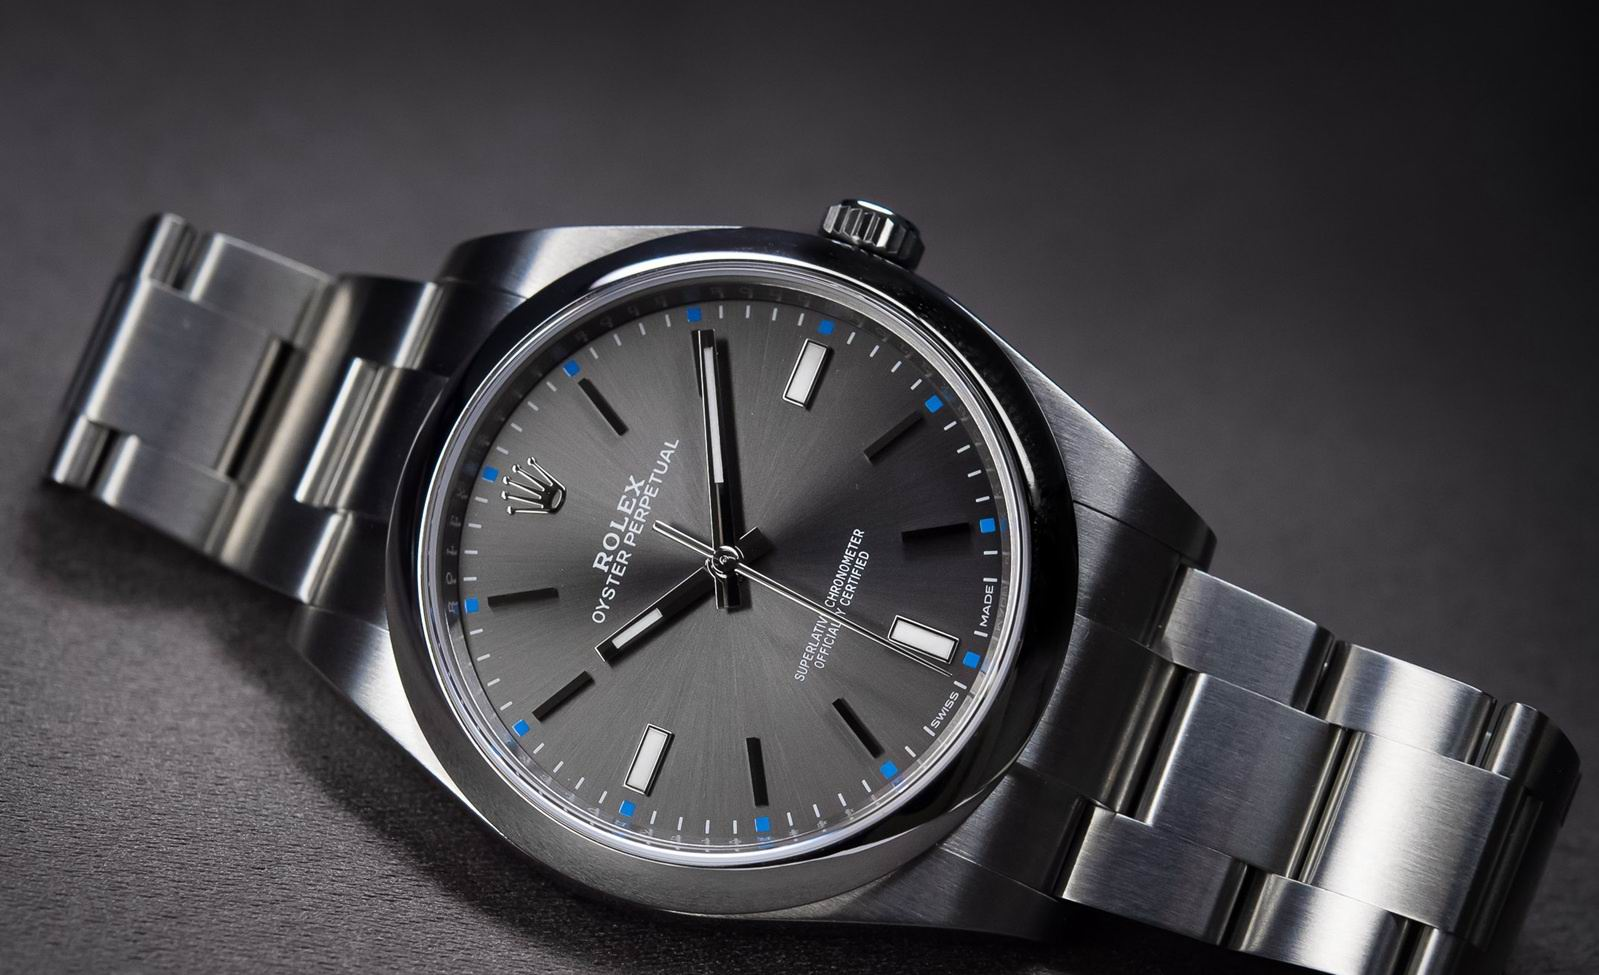 60ec0d98239 The new copy Oyster Perpetual Rolex watch dial is the most caught the eye  of three different color sun pattern dial. Rhodium deep gray dial is the  most ...